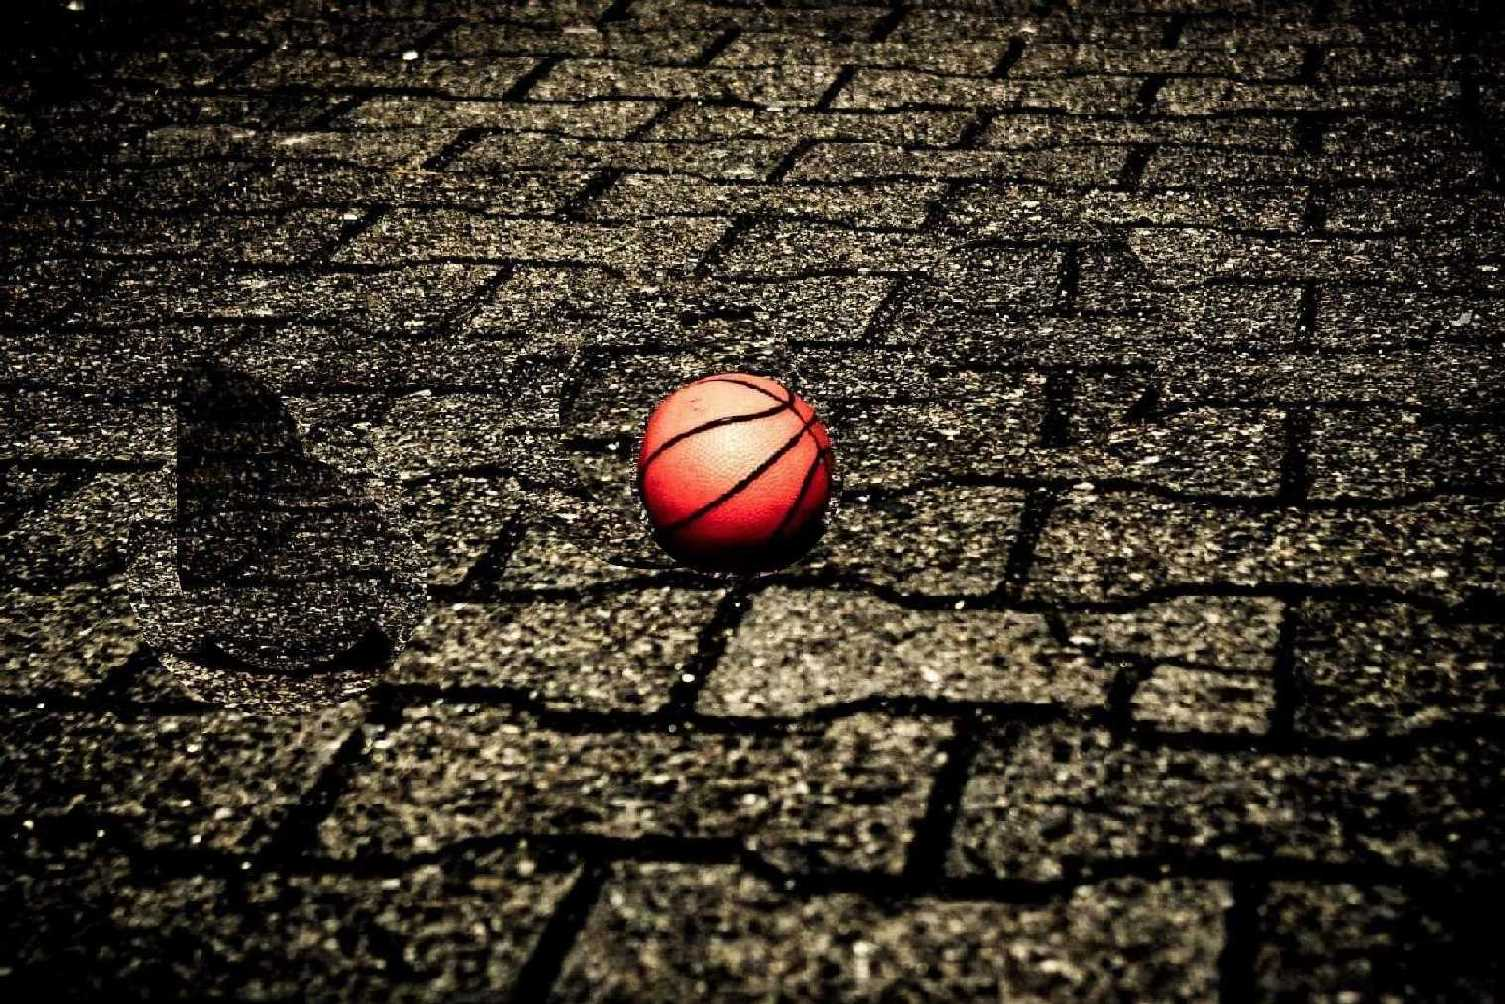 Sport Wallpaper Posts: High Definition Basketball Wallpaper